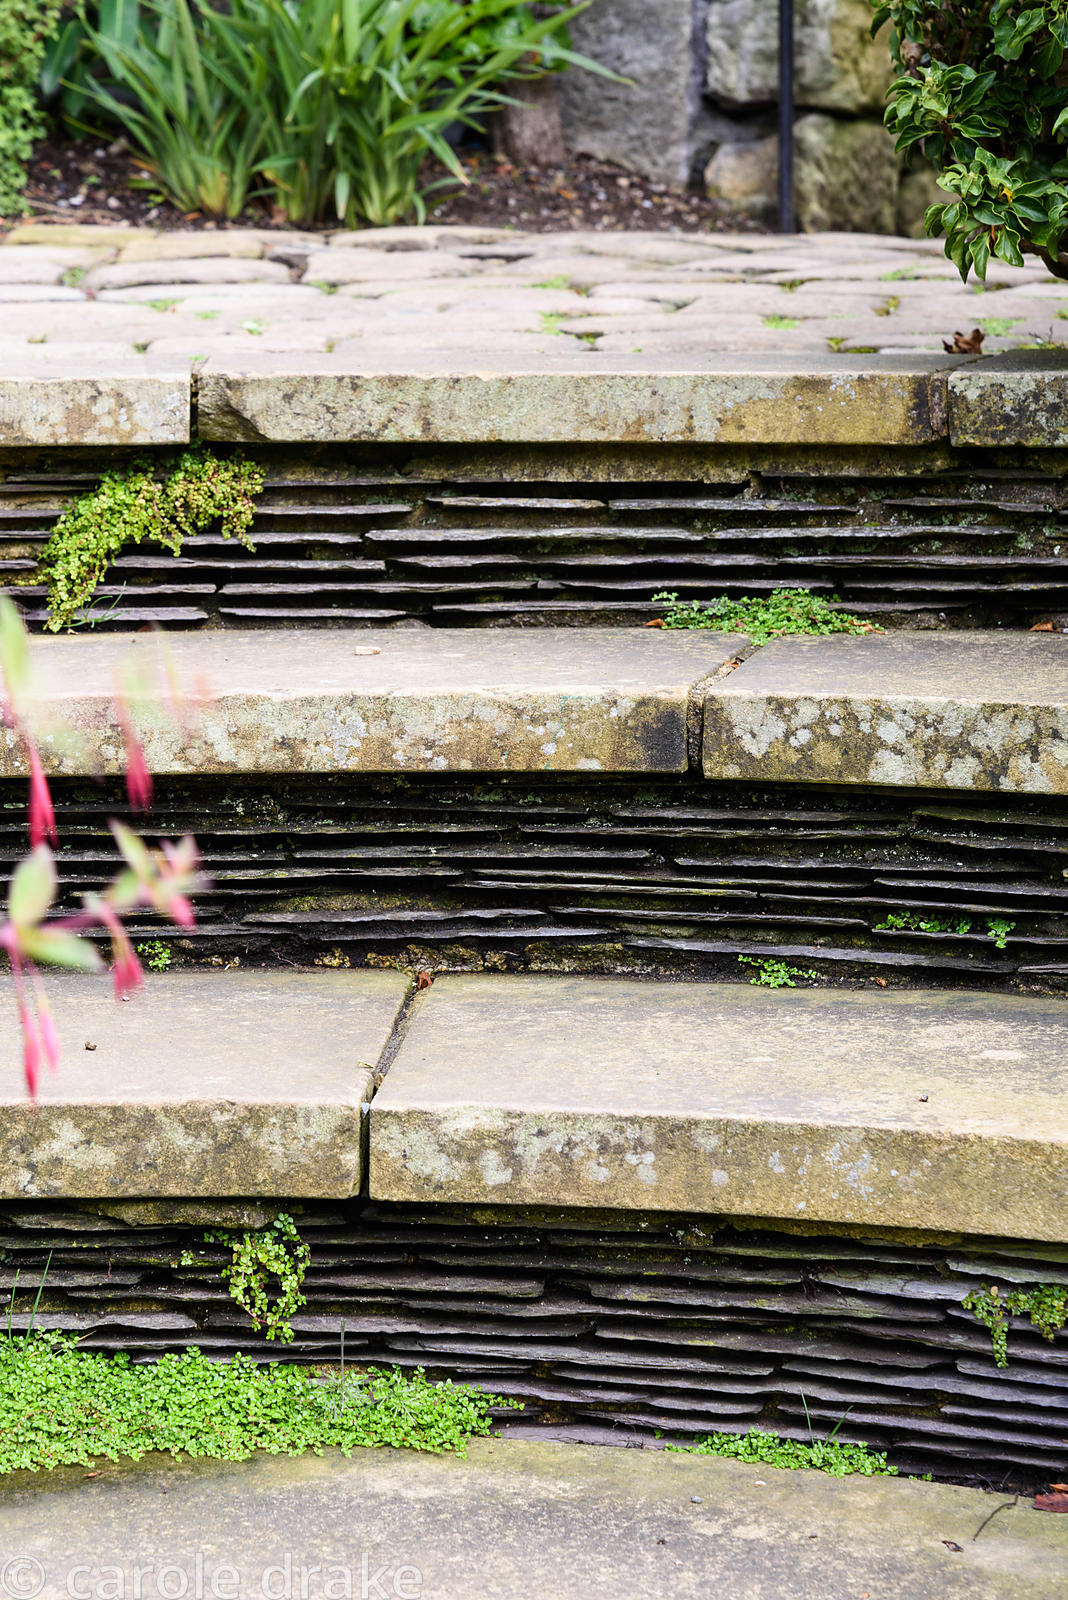 Risers made from pieces of slate in steps at York Gate Garden, Adel in July